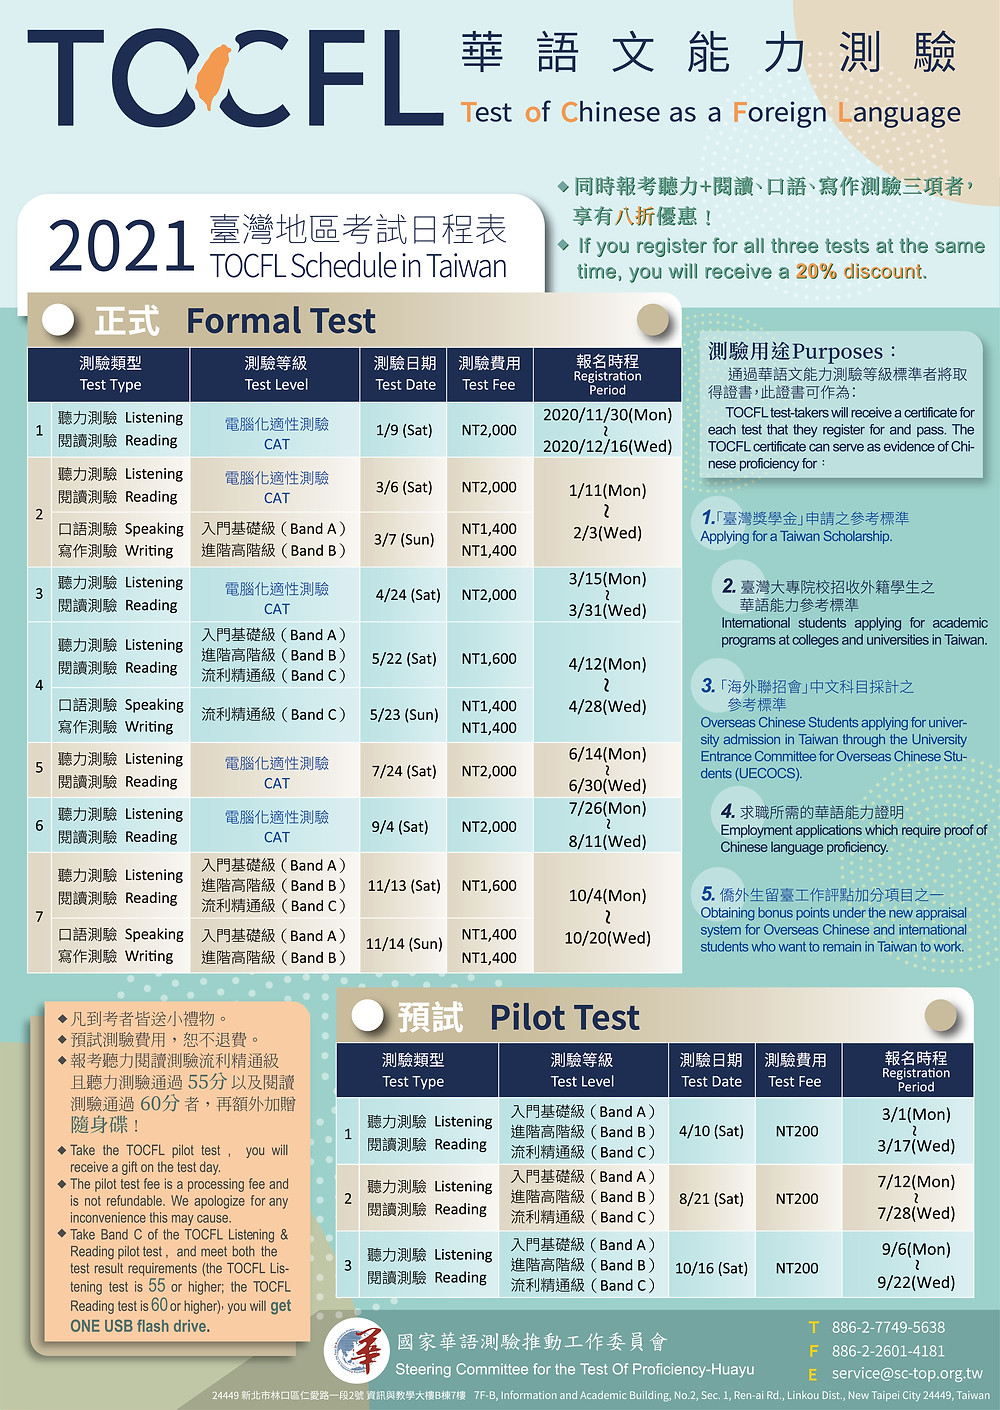 2021 TOCFL Formal Test Schedule in Taiwan